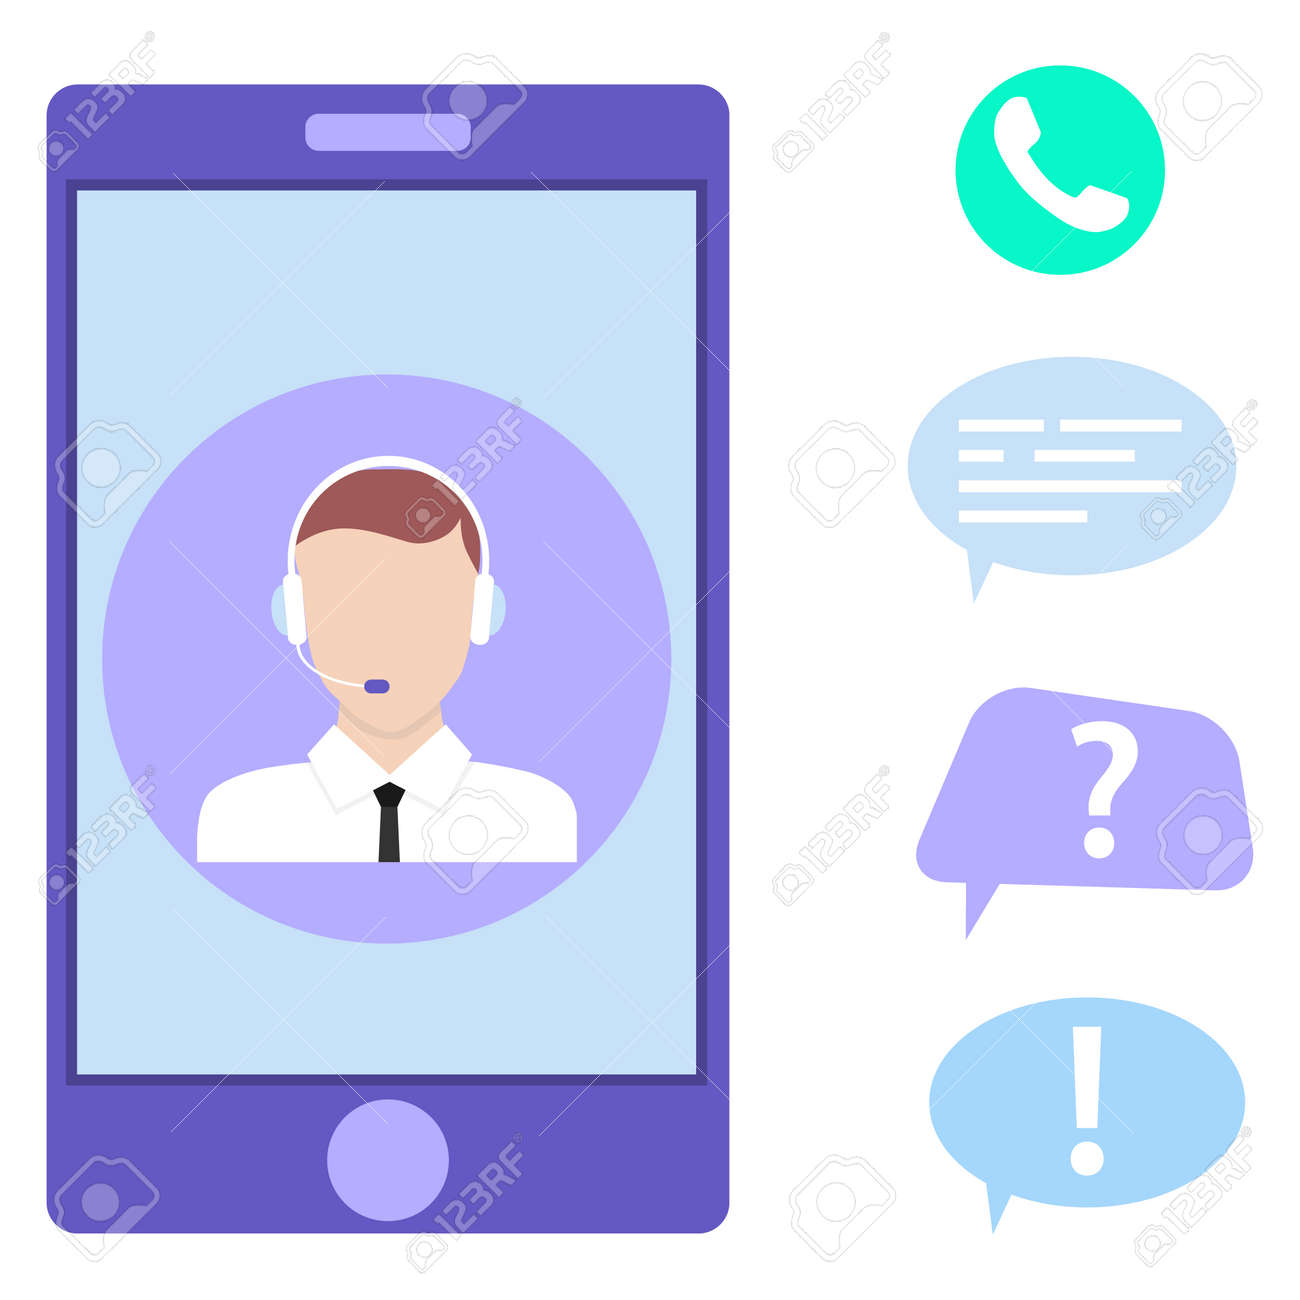 Call center, customer support on a smartphone. Vector illustration. Vector. - 162890955